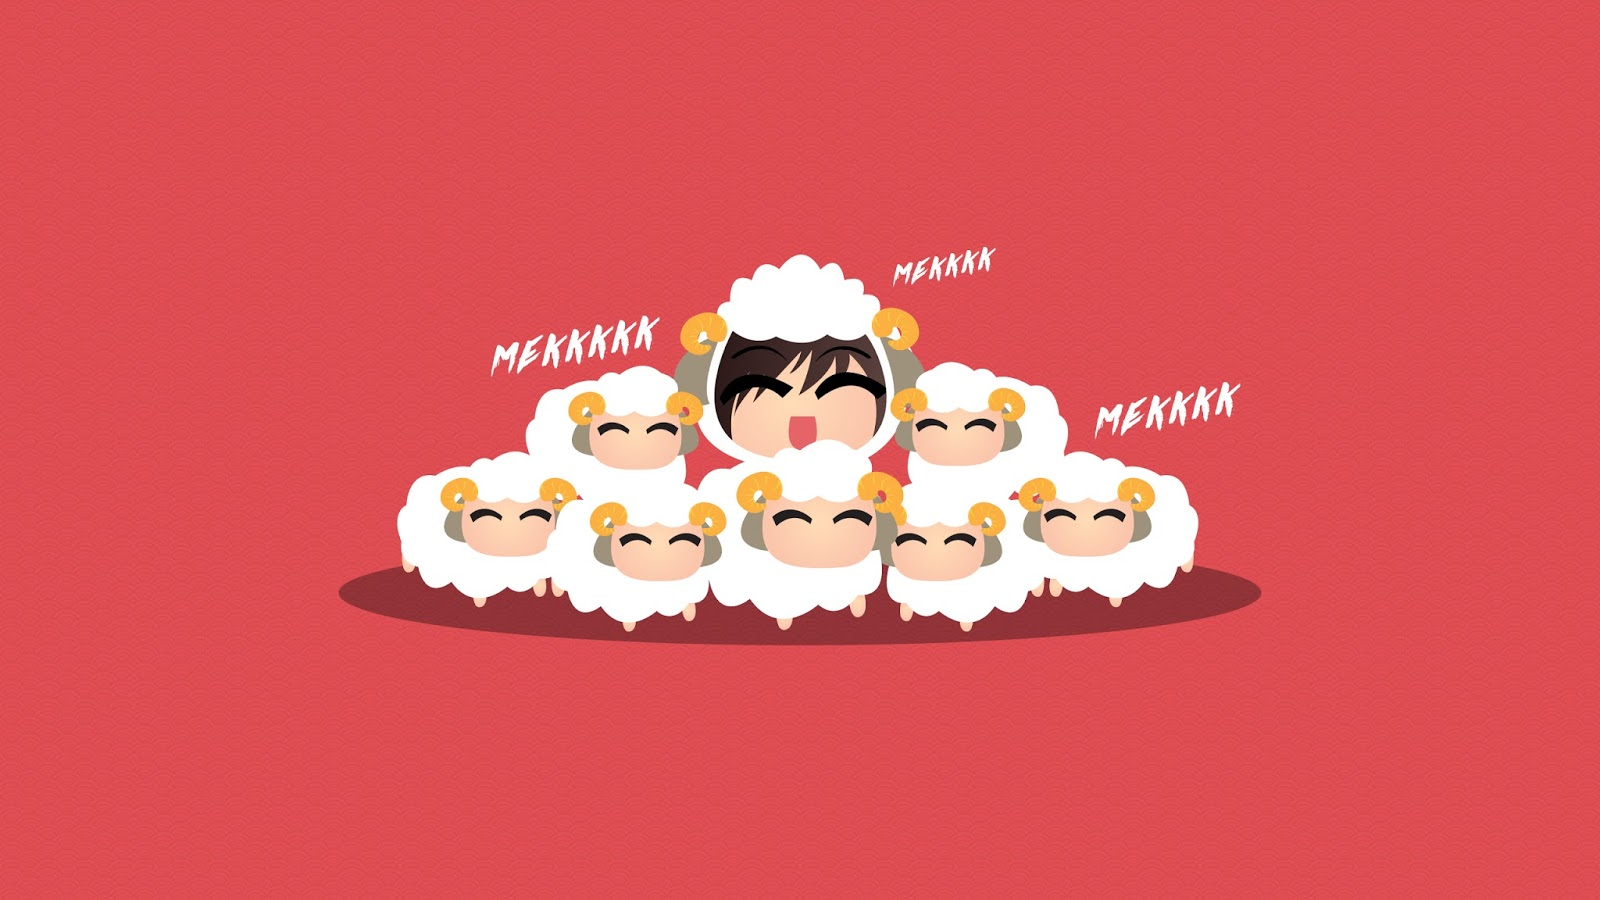 #wallpaper Mekk mekkkk Happy Chinese New Year Mekkkk